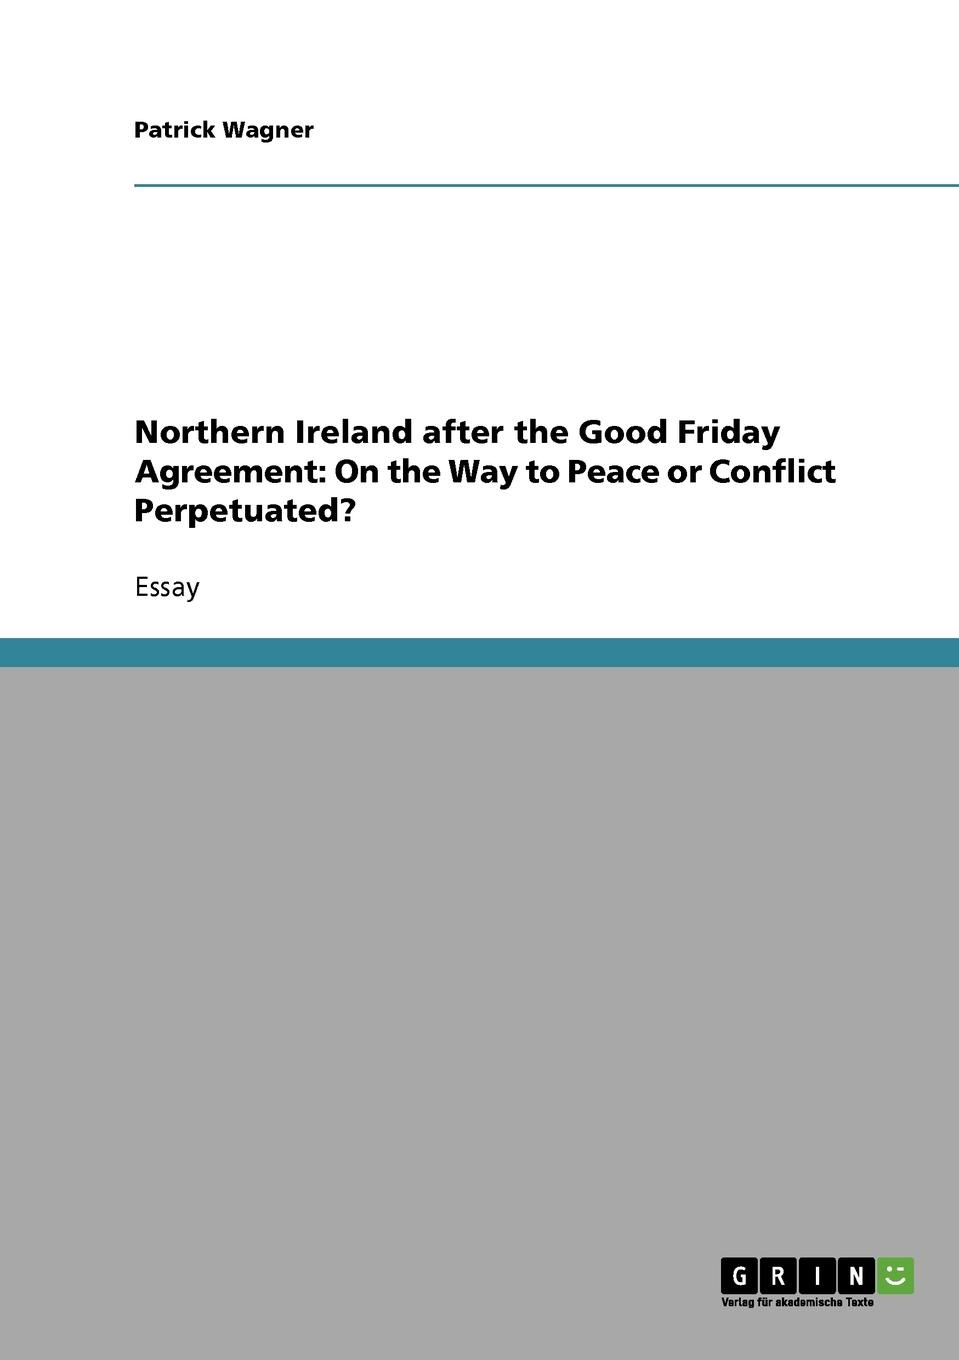 лучшая цена Patrick Wagner Northern Ireland after the Good Friday Agreement. On the Way to Peace or Conflict Perpetuated.